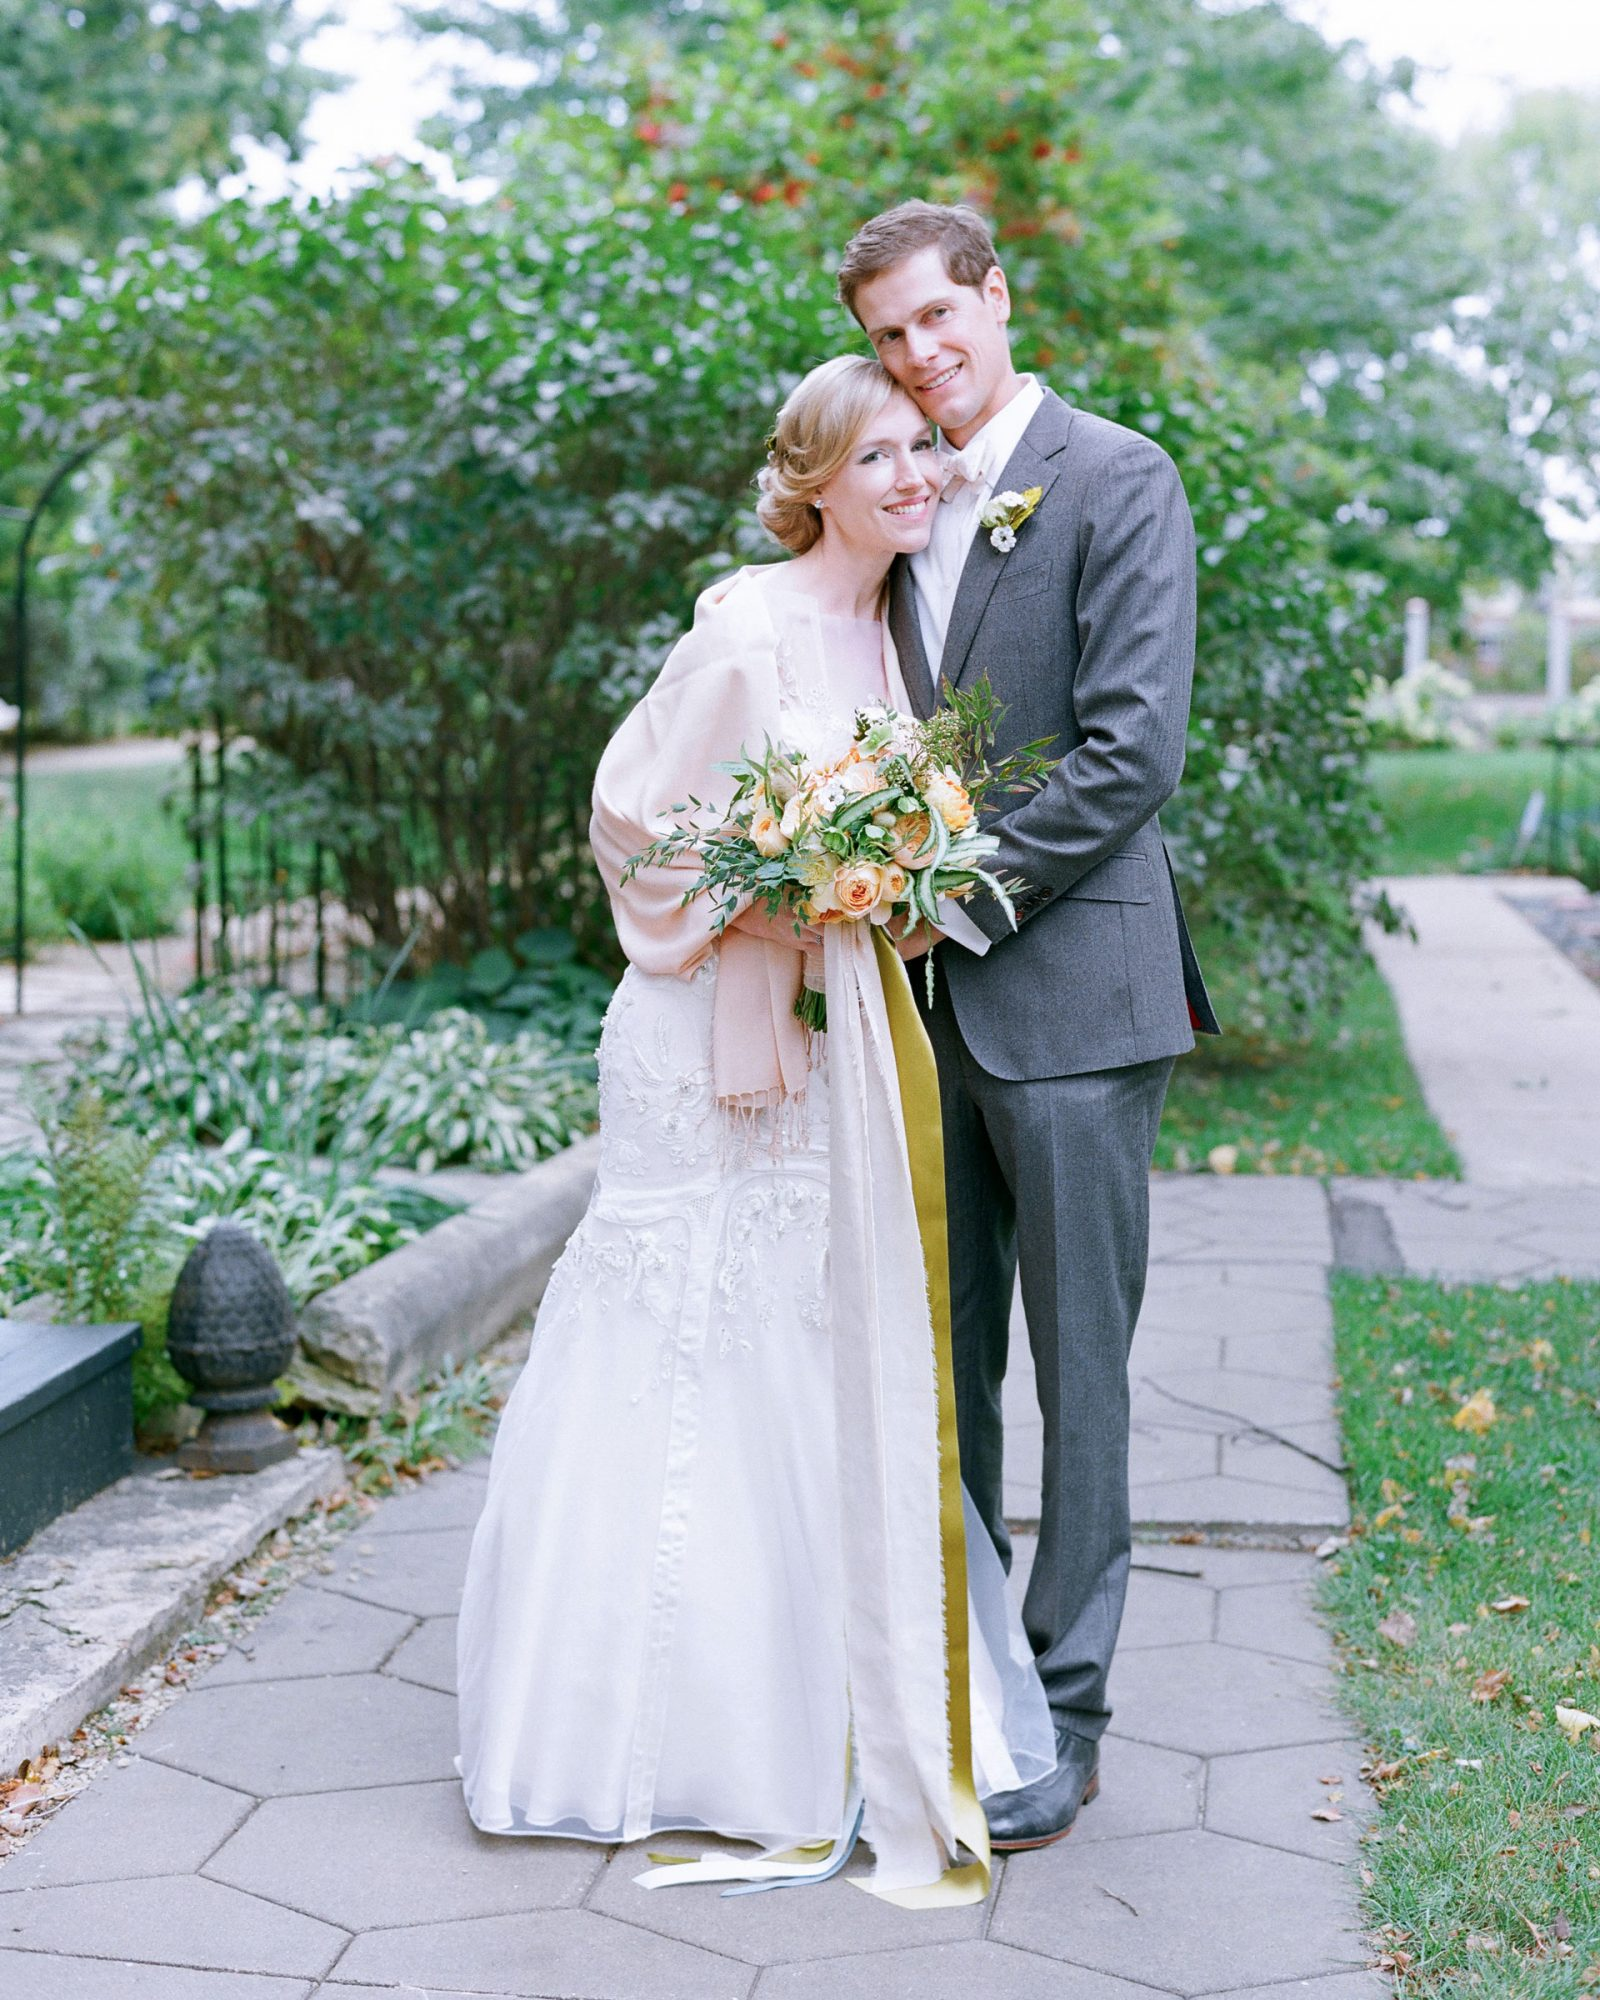 adrienne-jason-wedding-minnesota-couple-0013-s111925.jpg